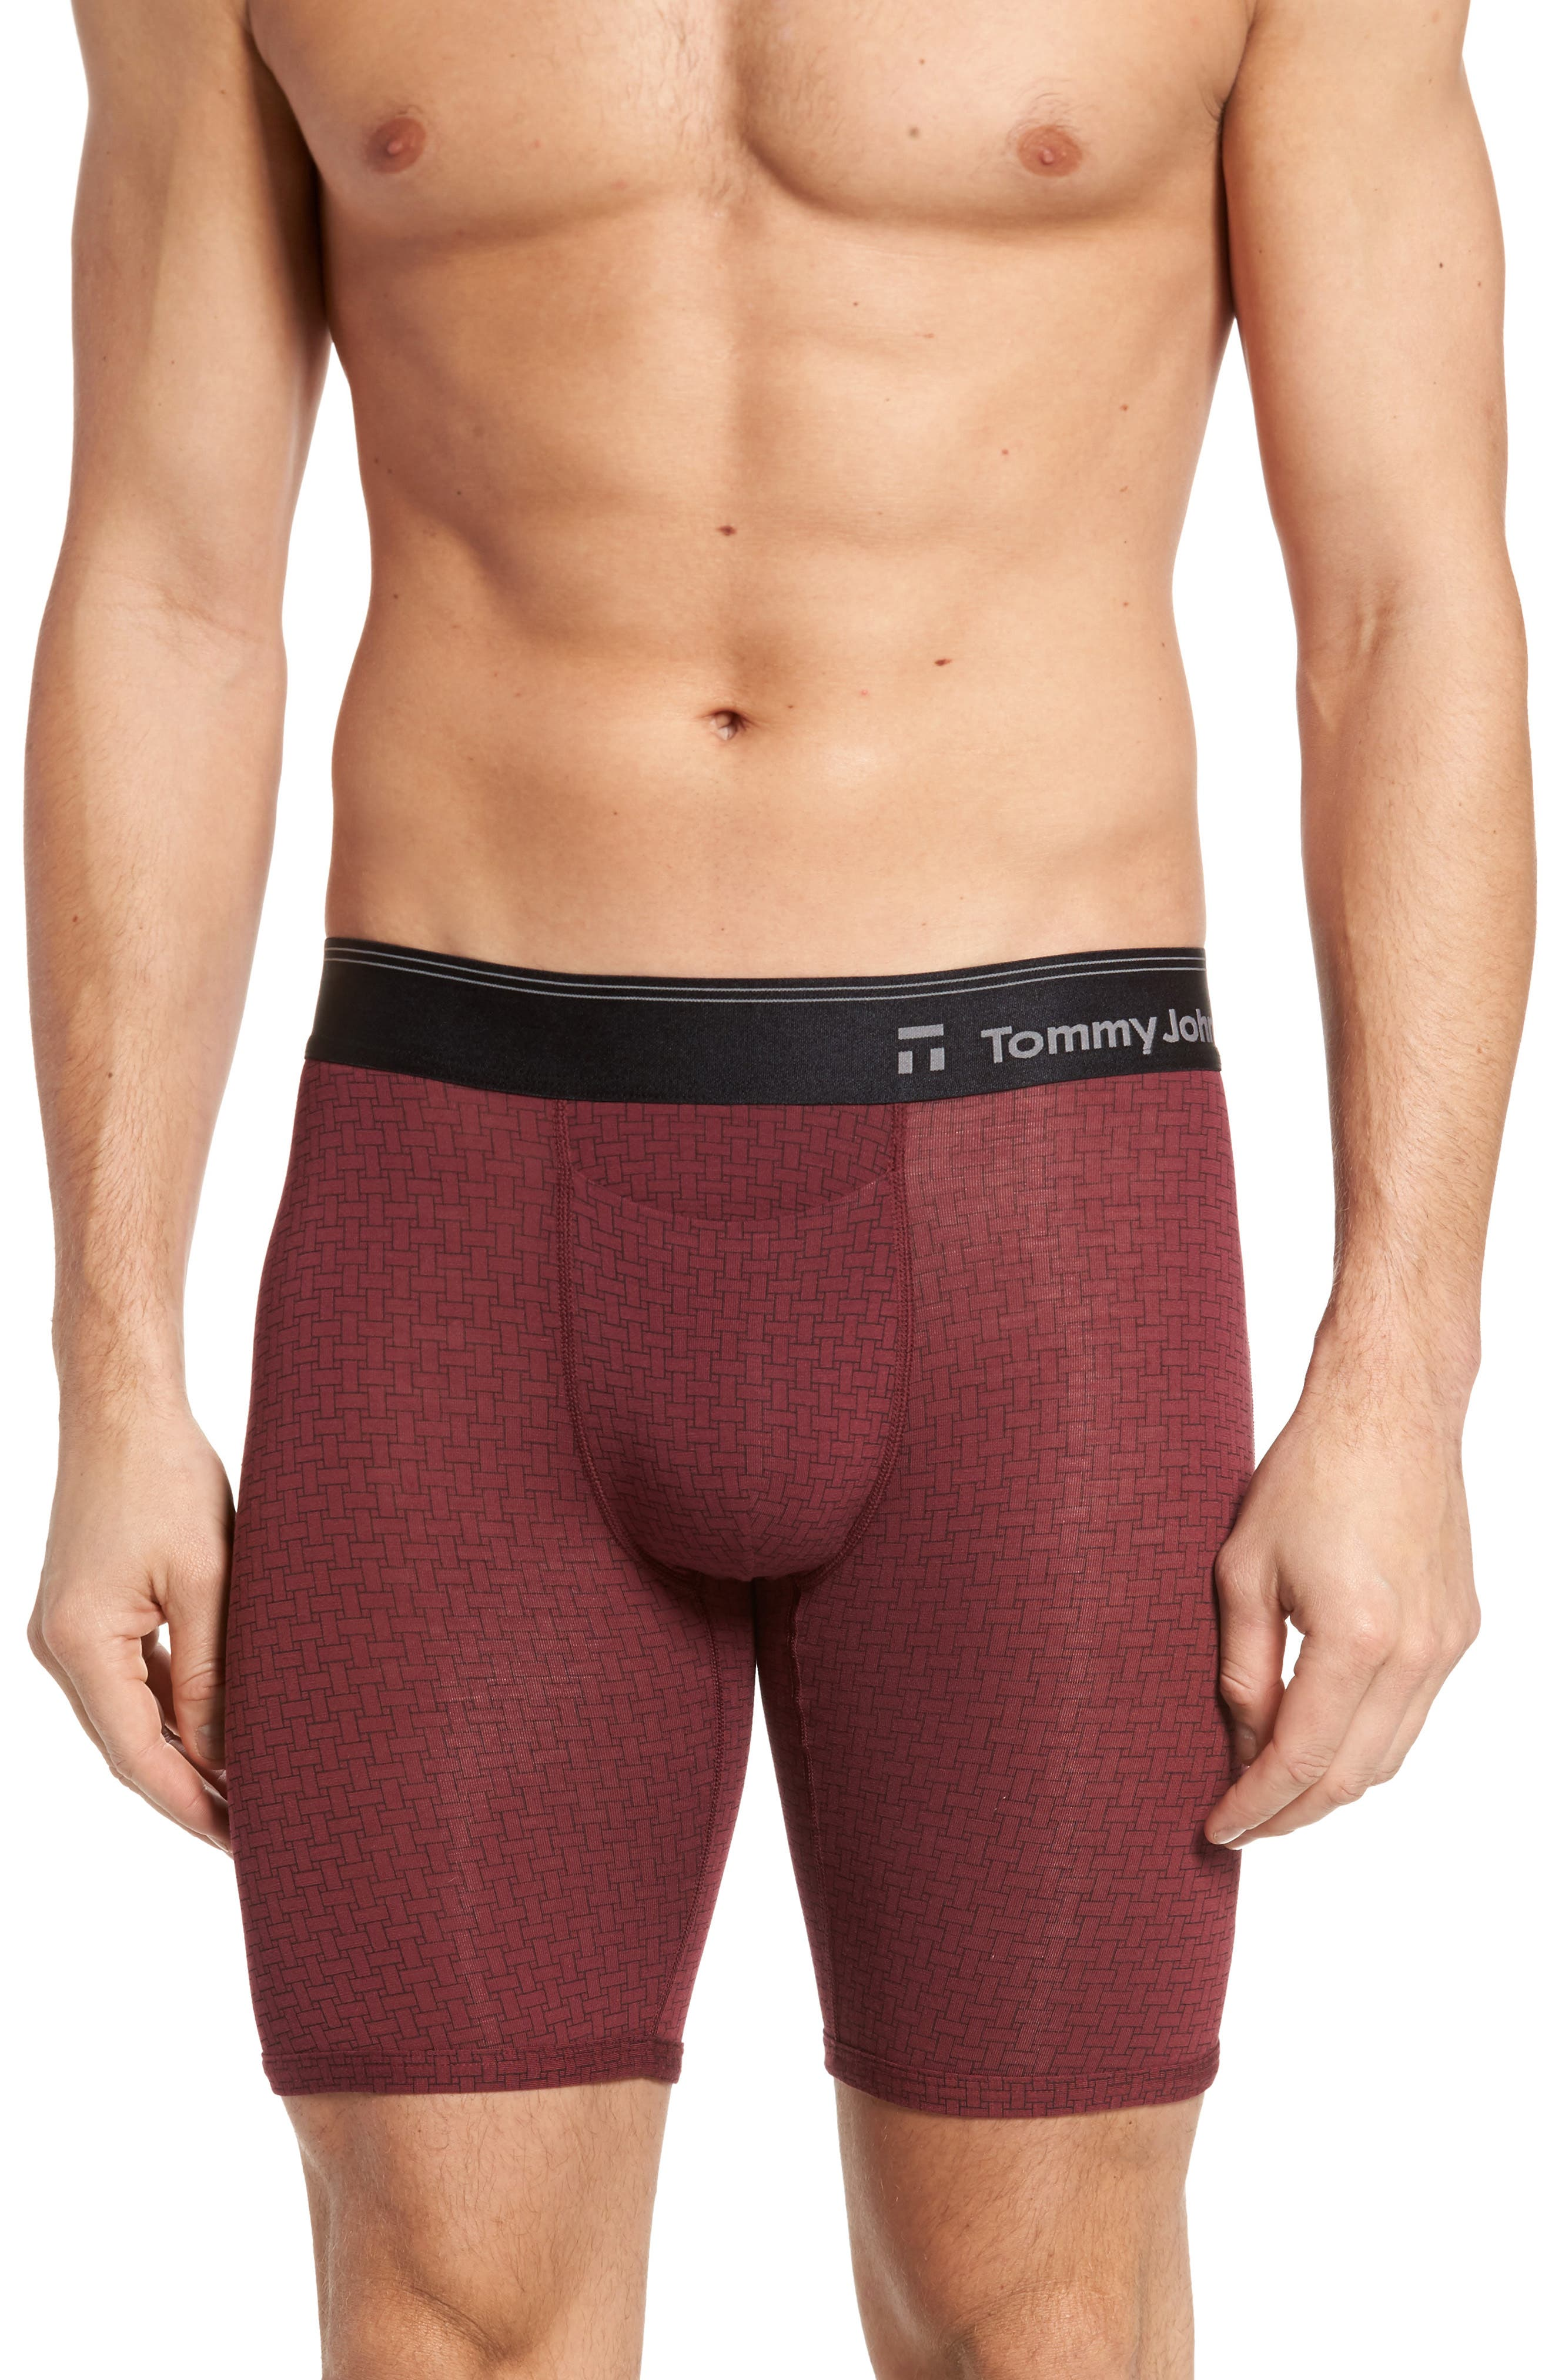 Tommy John Second Skin Hawthorne Print Boxer Briefs